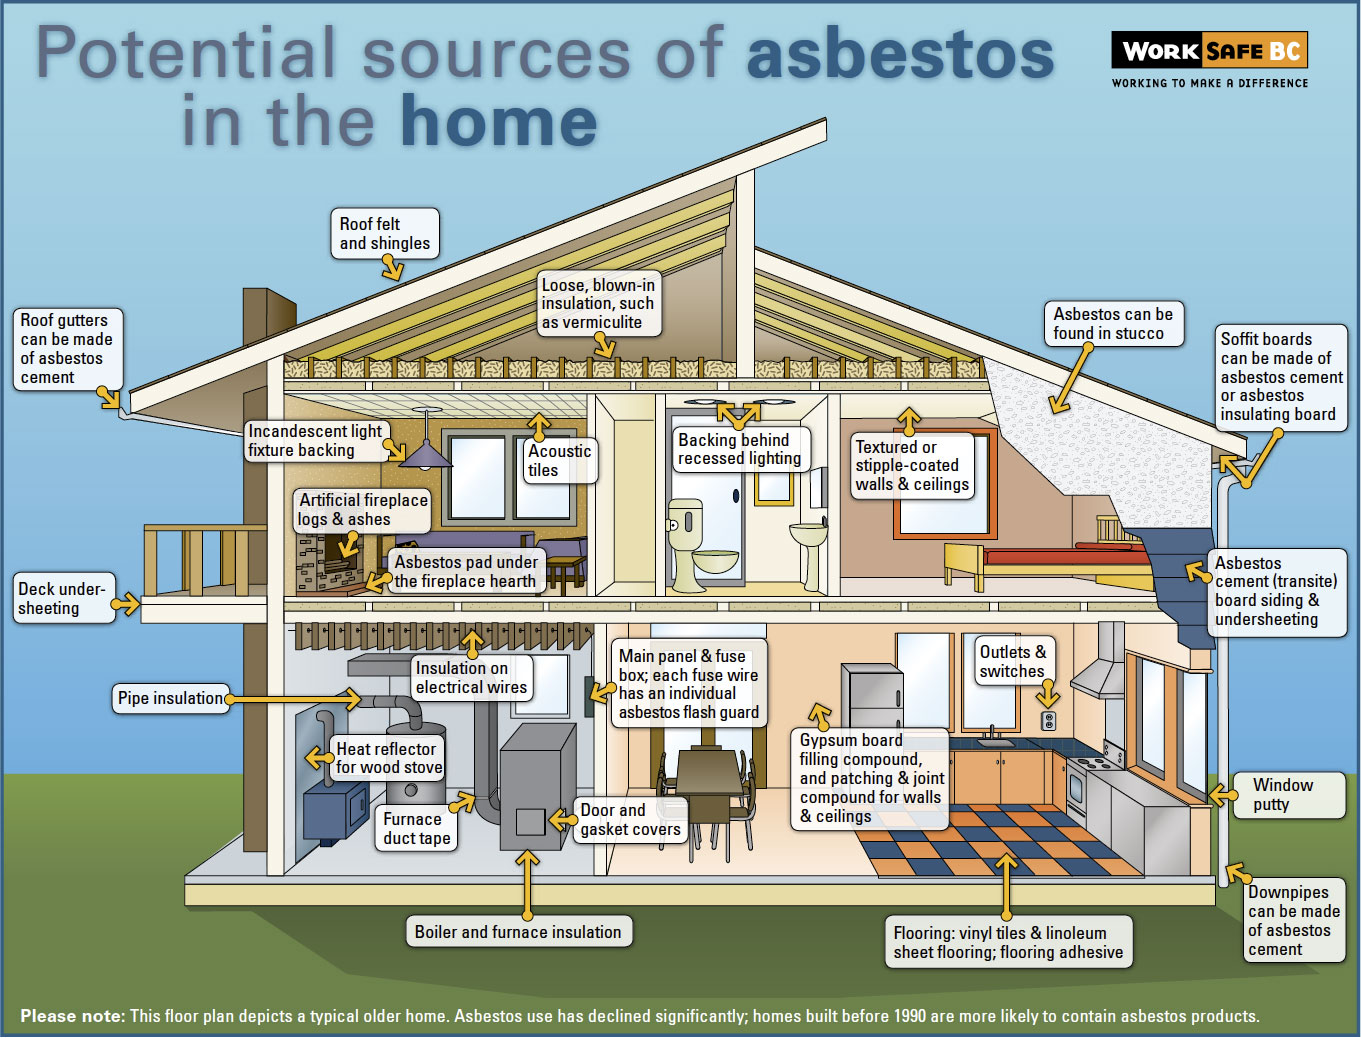 the many uses of asbestos containing products in house construction Many products are still allowed to contain asbestos in small amounts and historic uses are prevalent today, continuing to pose a risk these products are listed below, where more information can be found on items and materials that contain asbestos, their uses and the risk posed to those exposed.